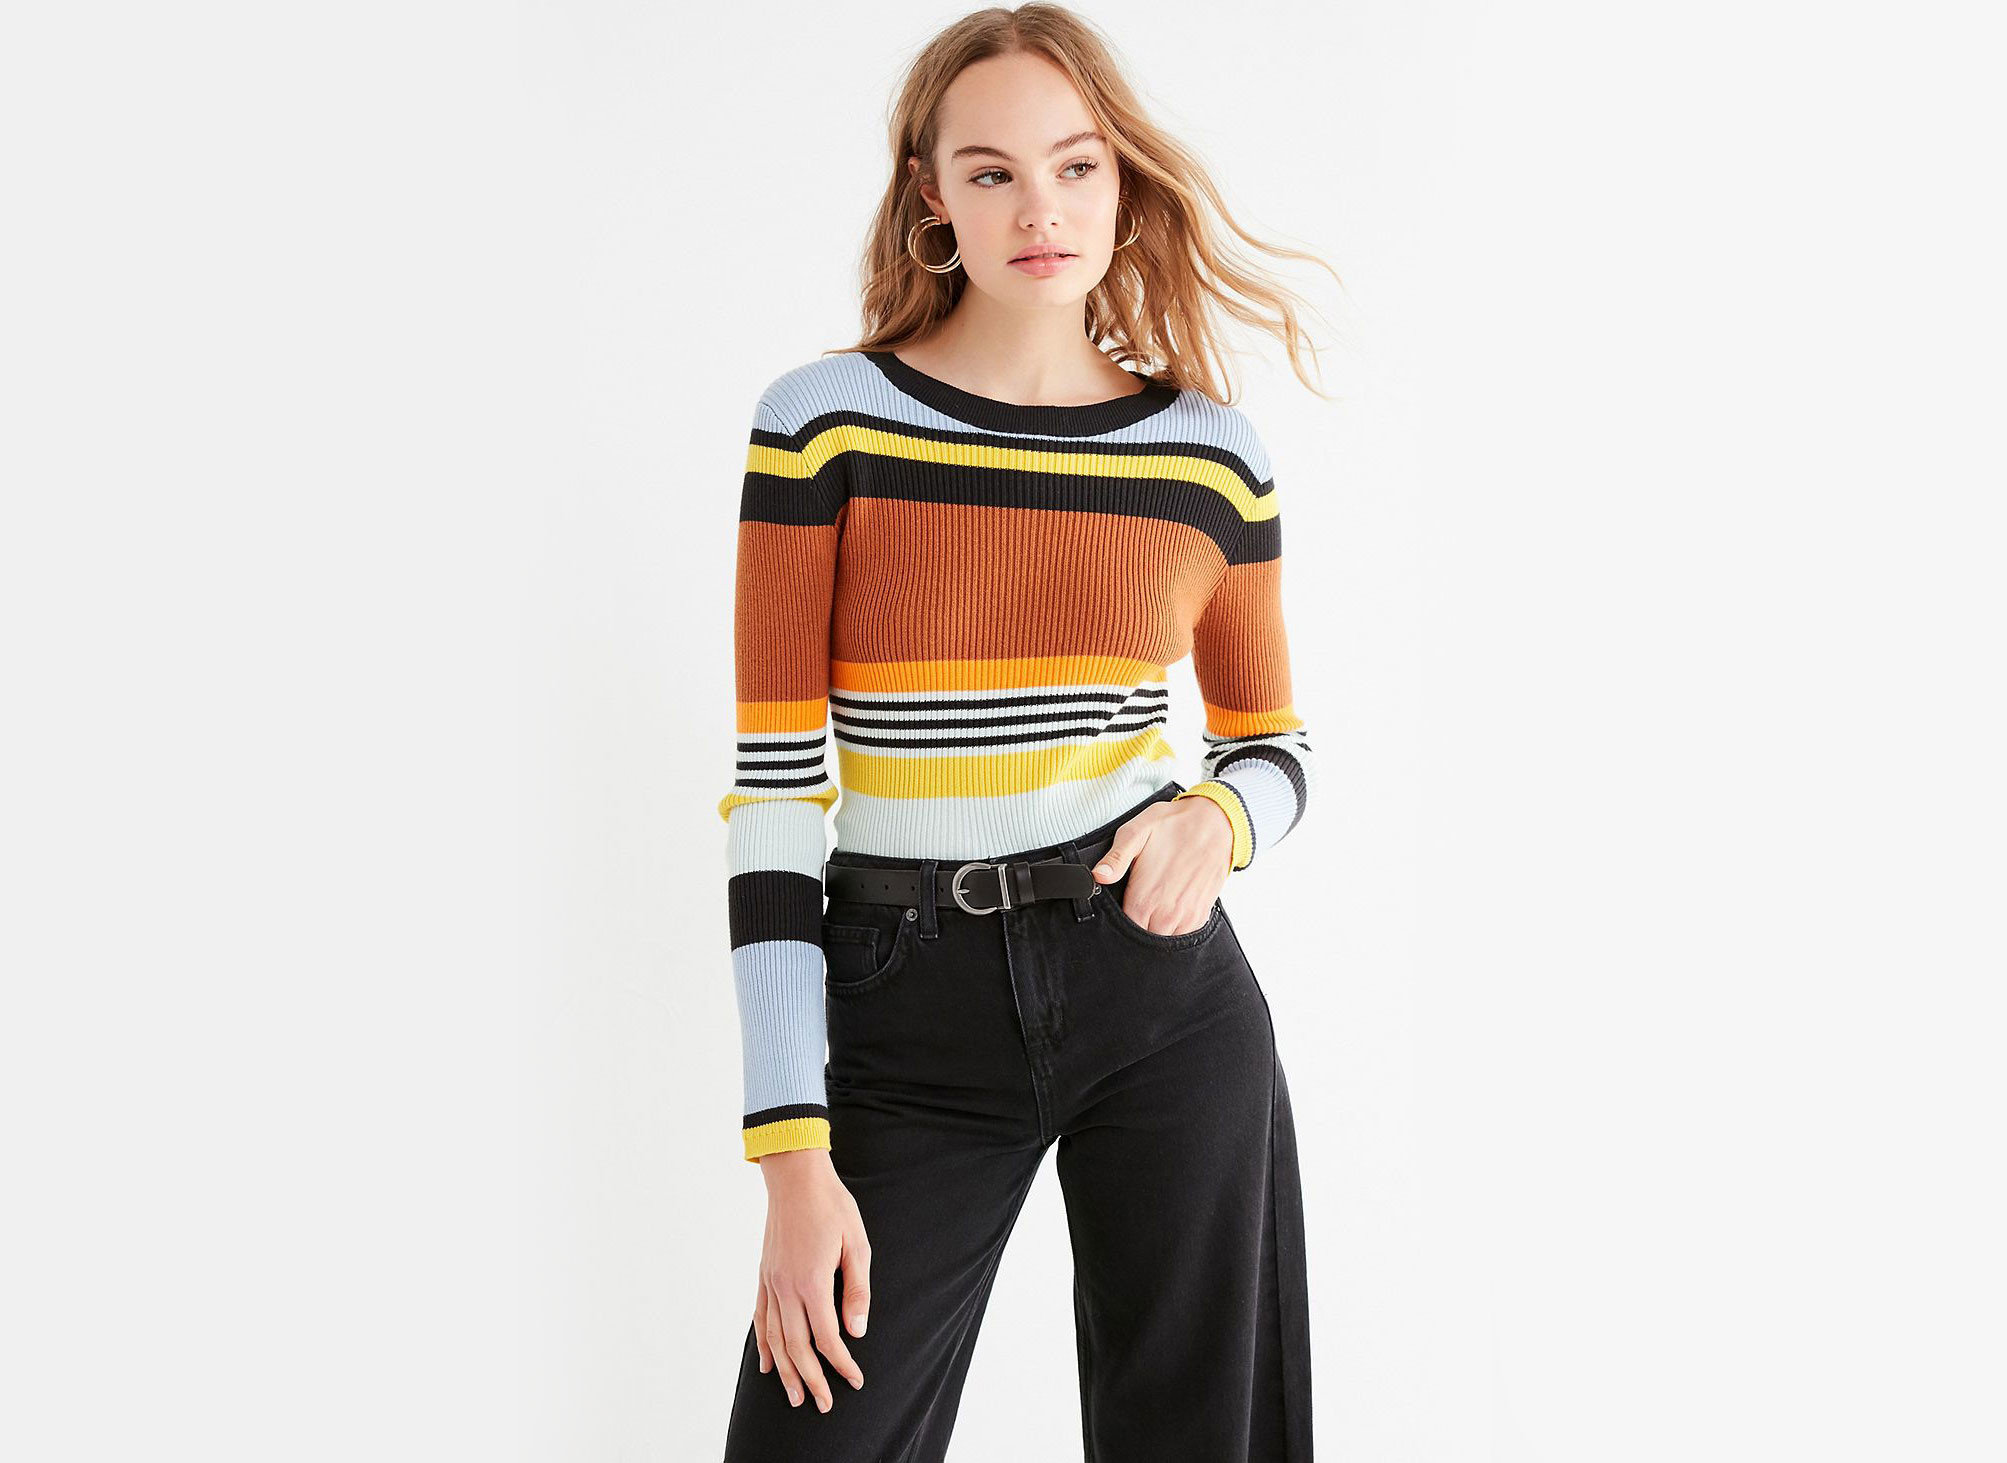 Style + Design Travel Shop clothing person yellow sleeve shoulder standing joint fashion model trouser neck t shirt product waist sweater posing